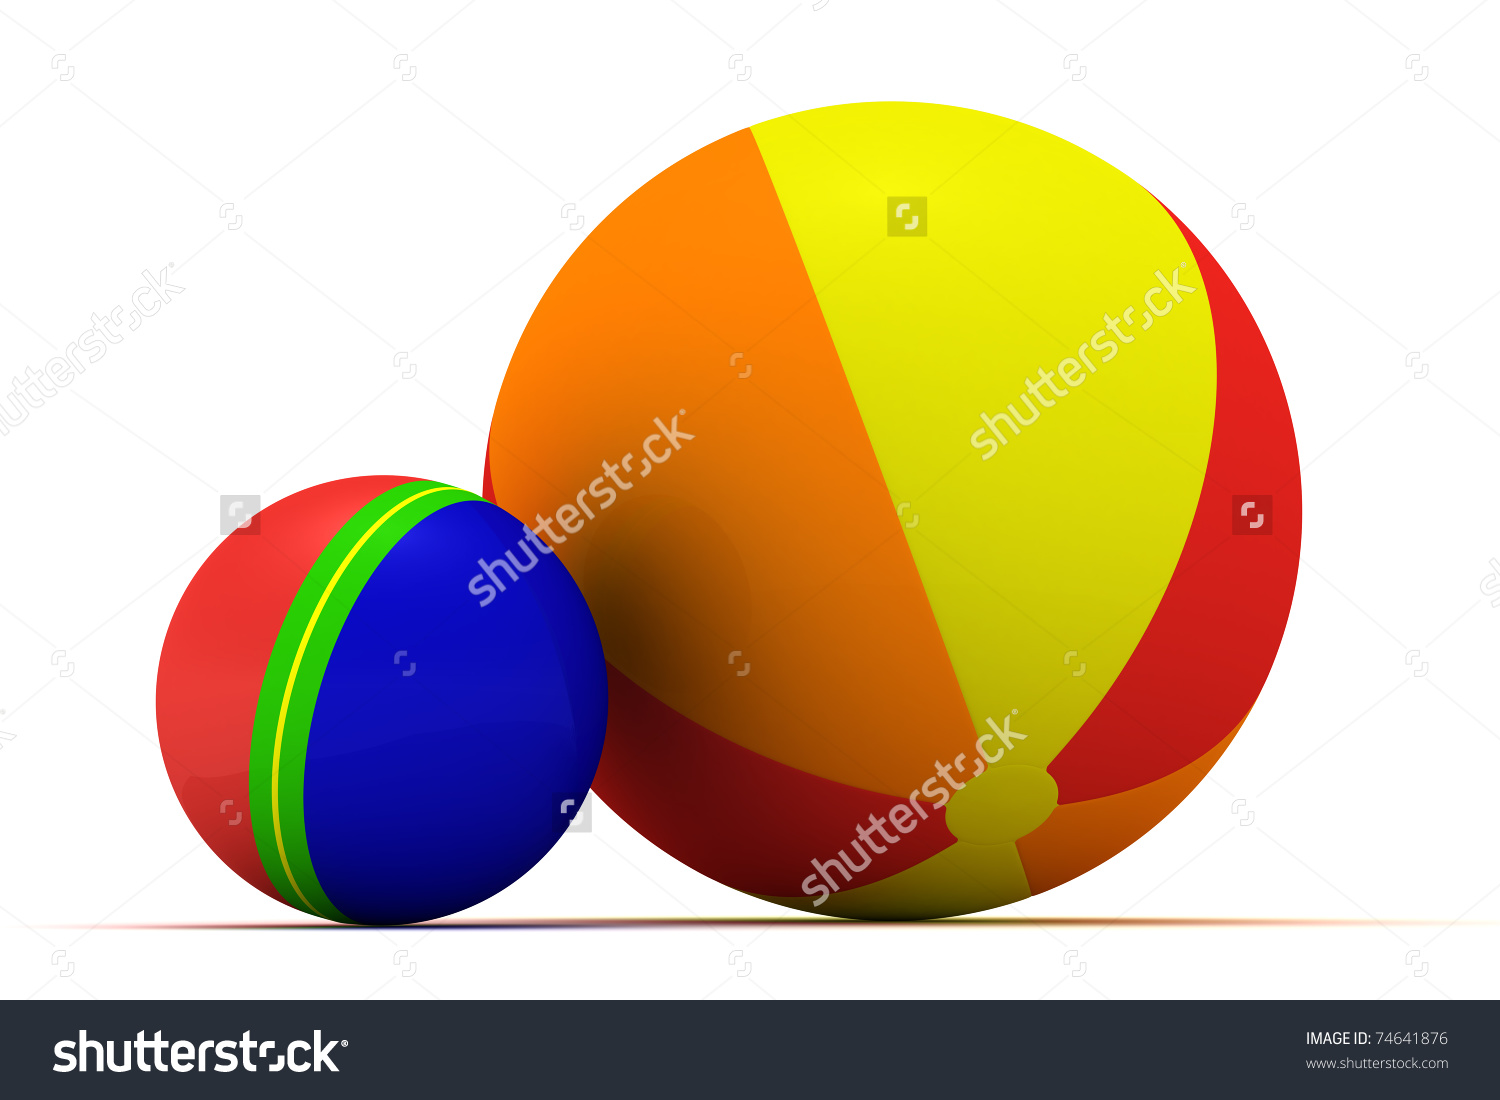 Sphere clipart small ball Isolated and Multicolored Big collections